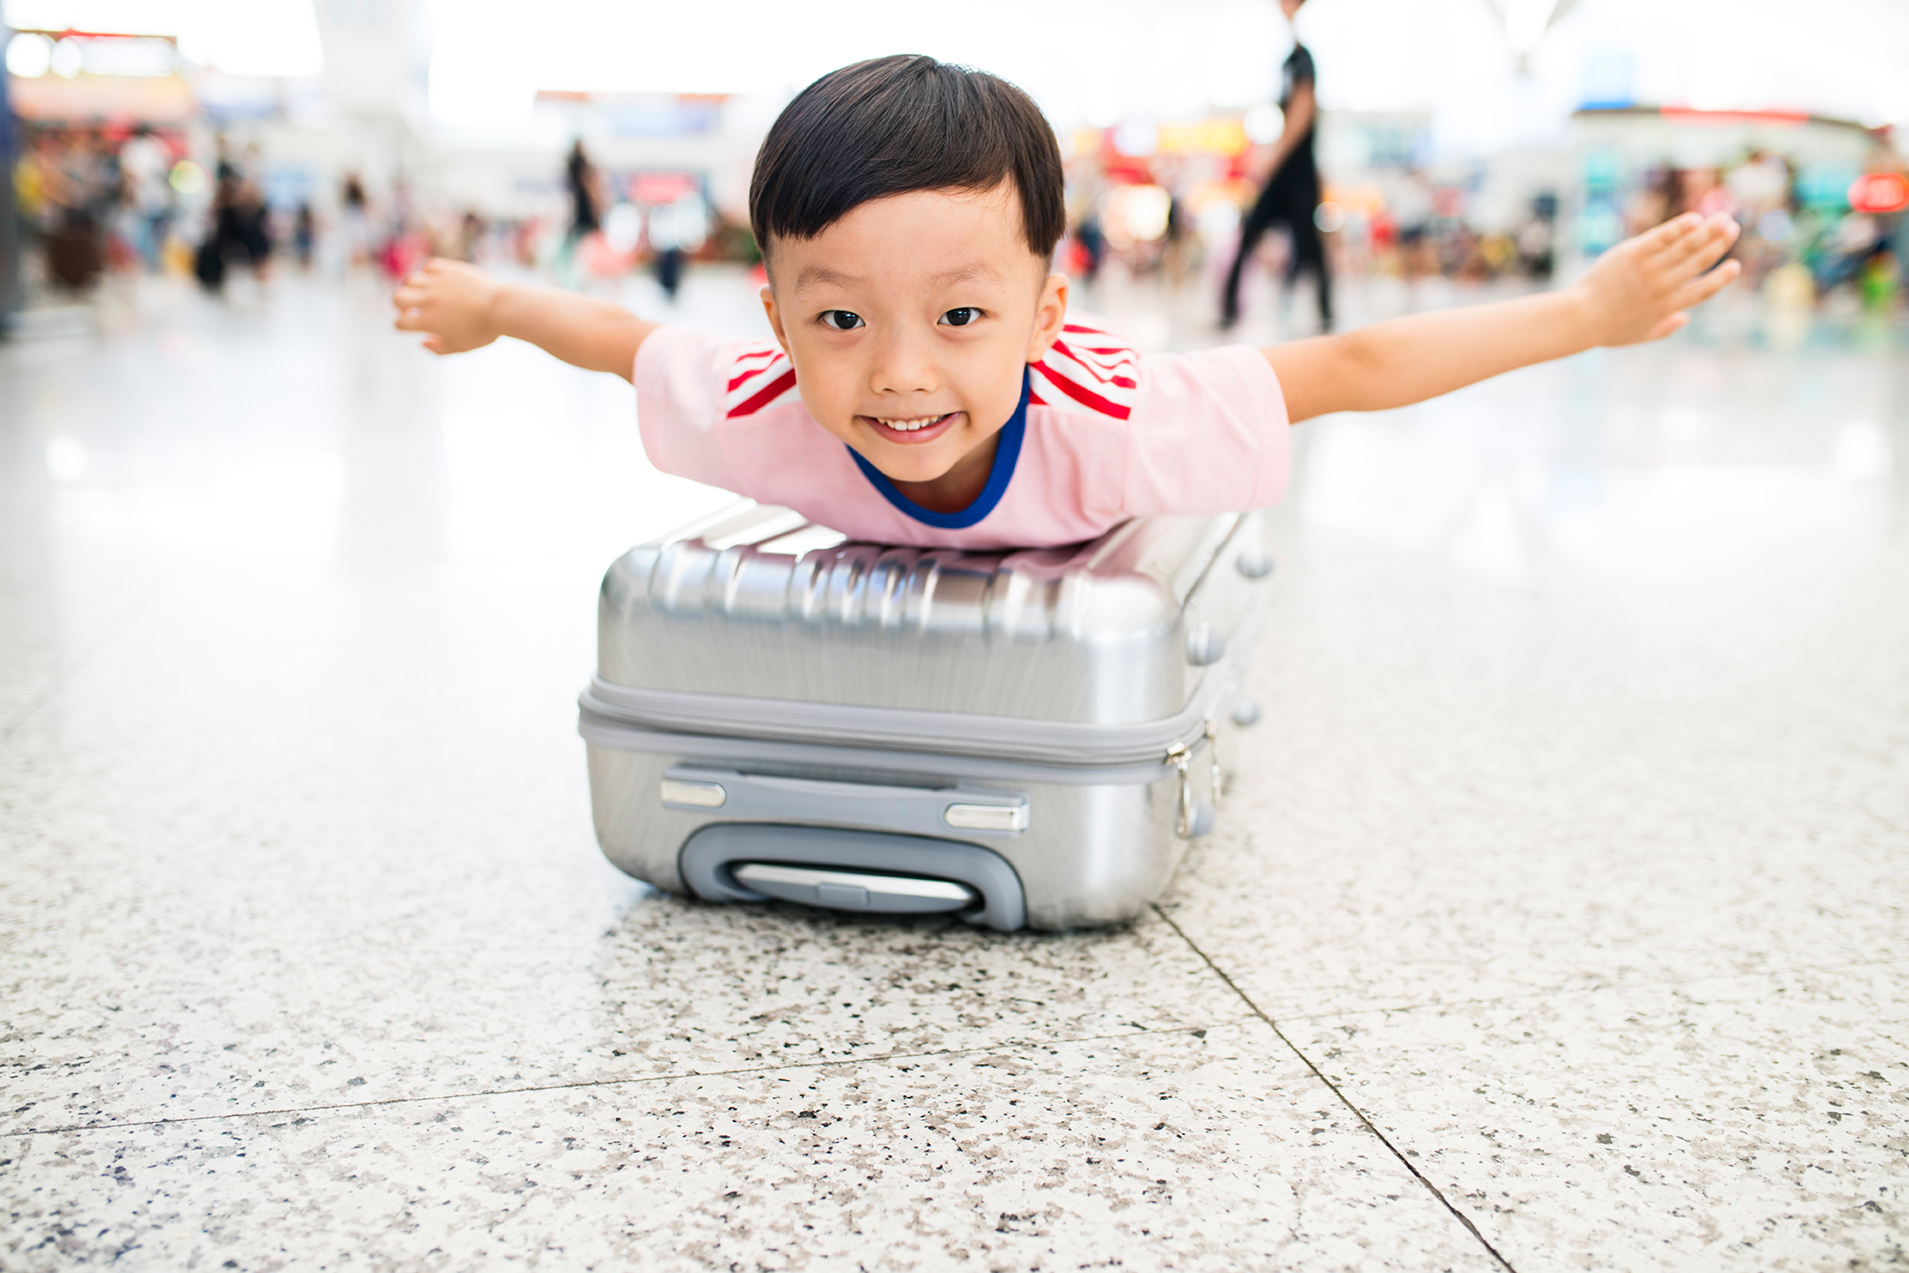 Travel tips for families (by air)